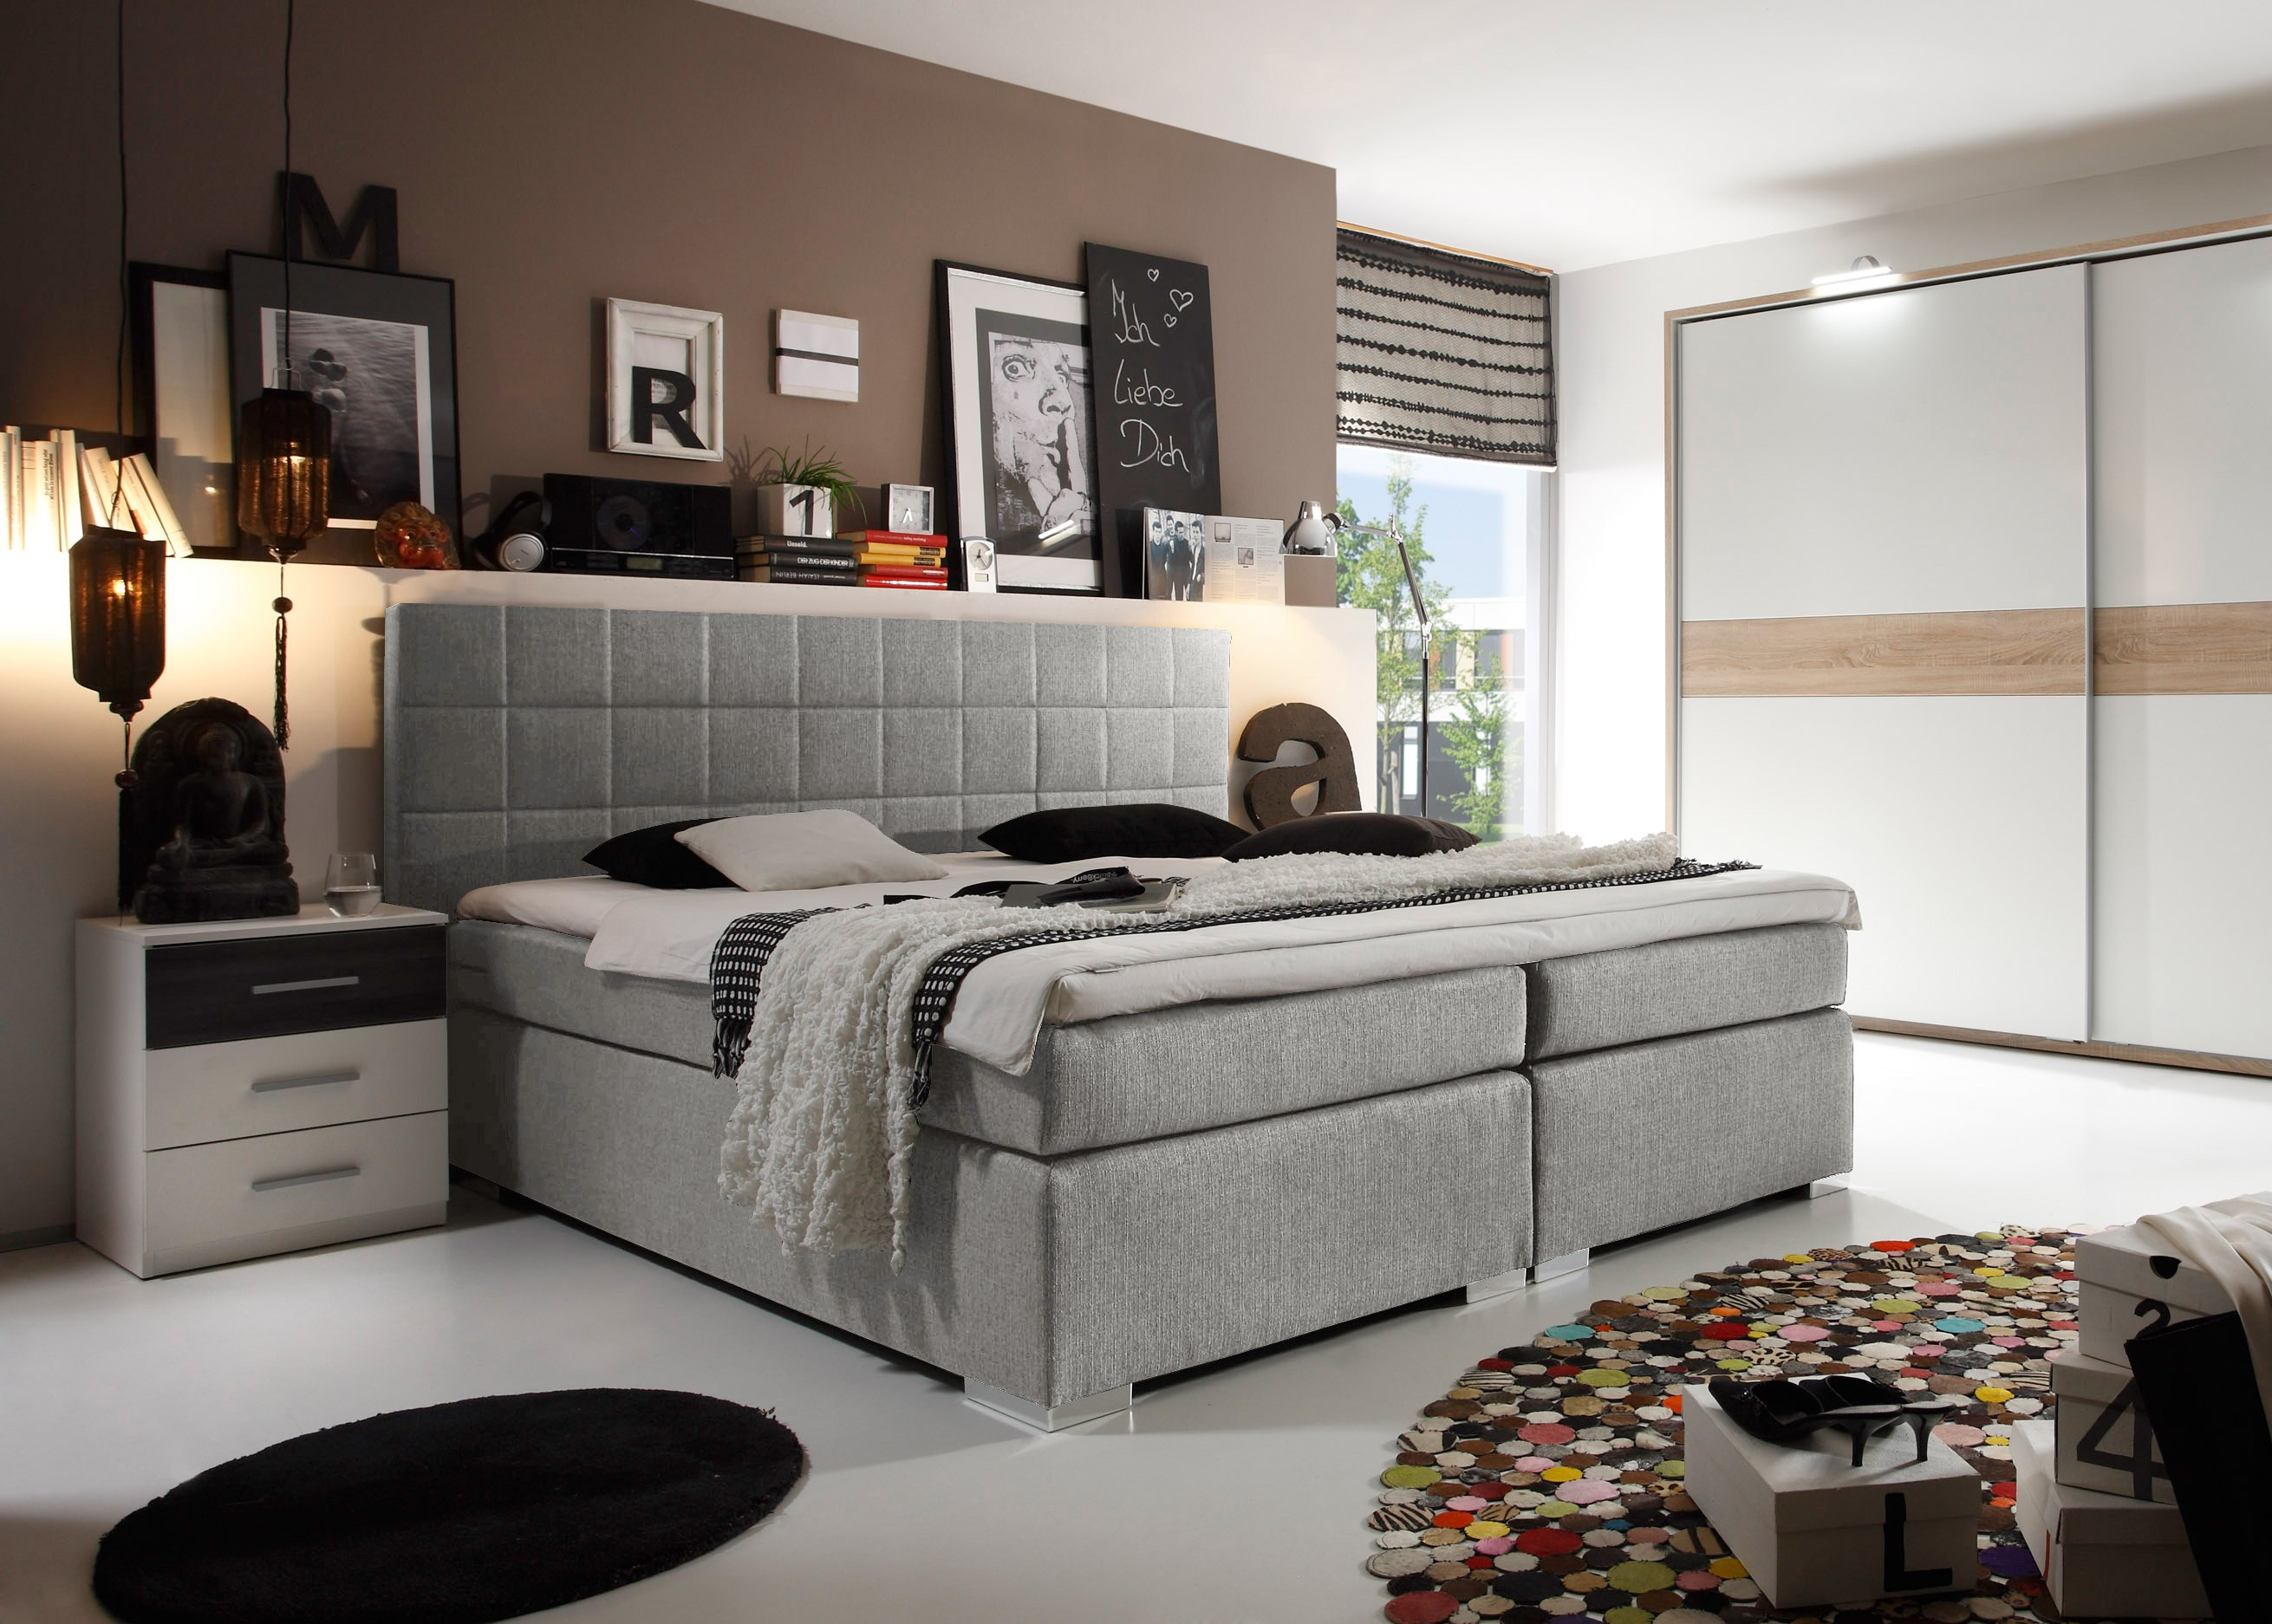 bett doppelbett boxspringbett 180x200cm silber grau 7 zonen komfort topper ebay. Black Bedroom Furniture Sets. Home Design Ideas